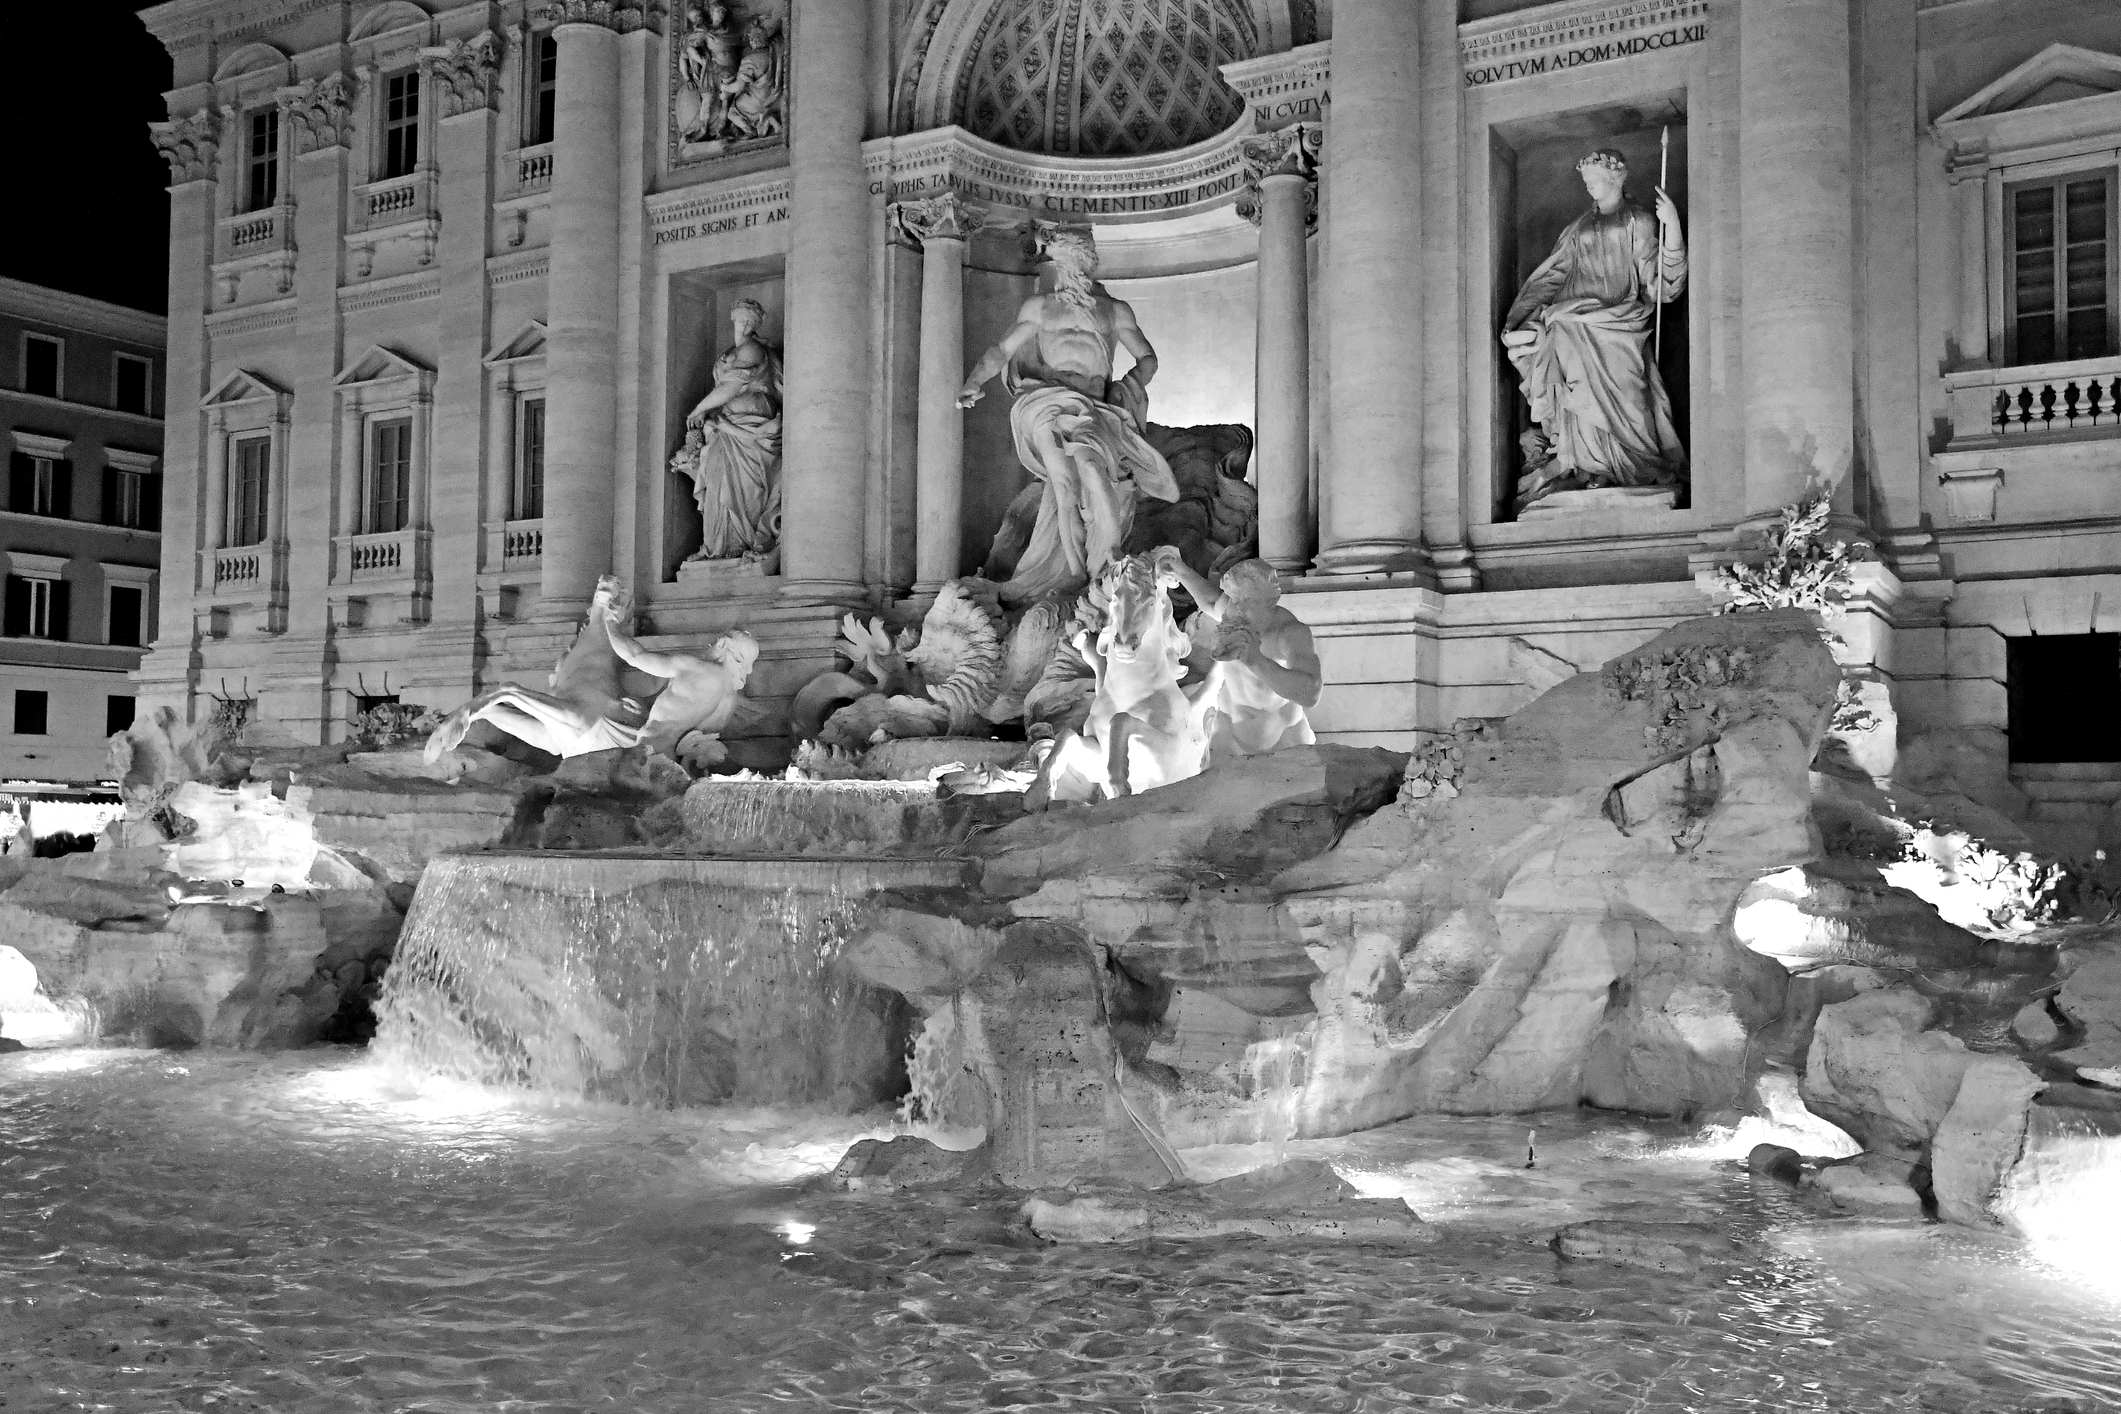 Retro photos in B&W of Rome, Italy